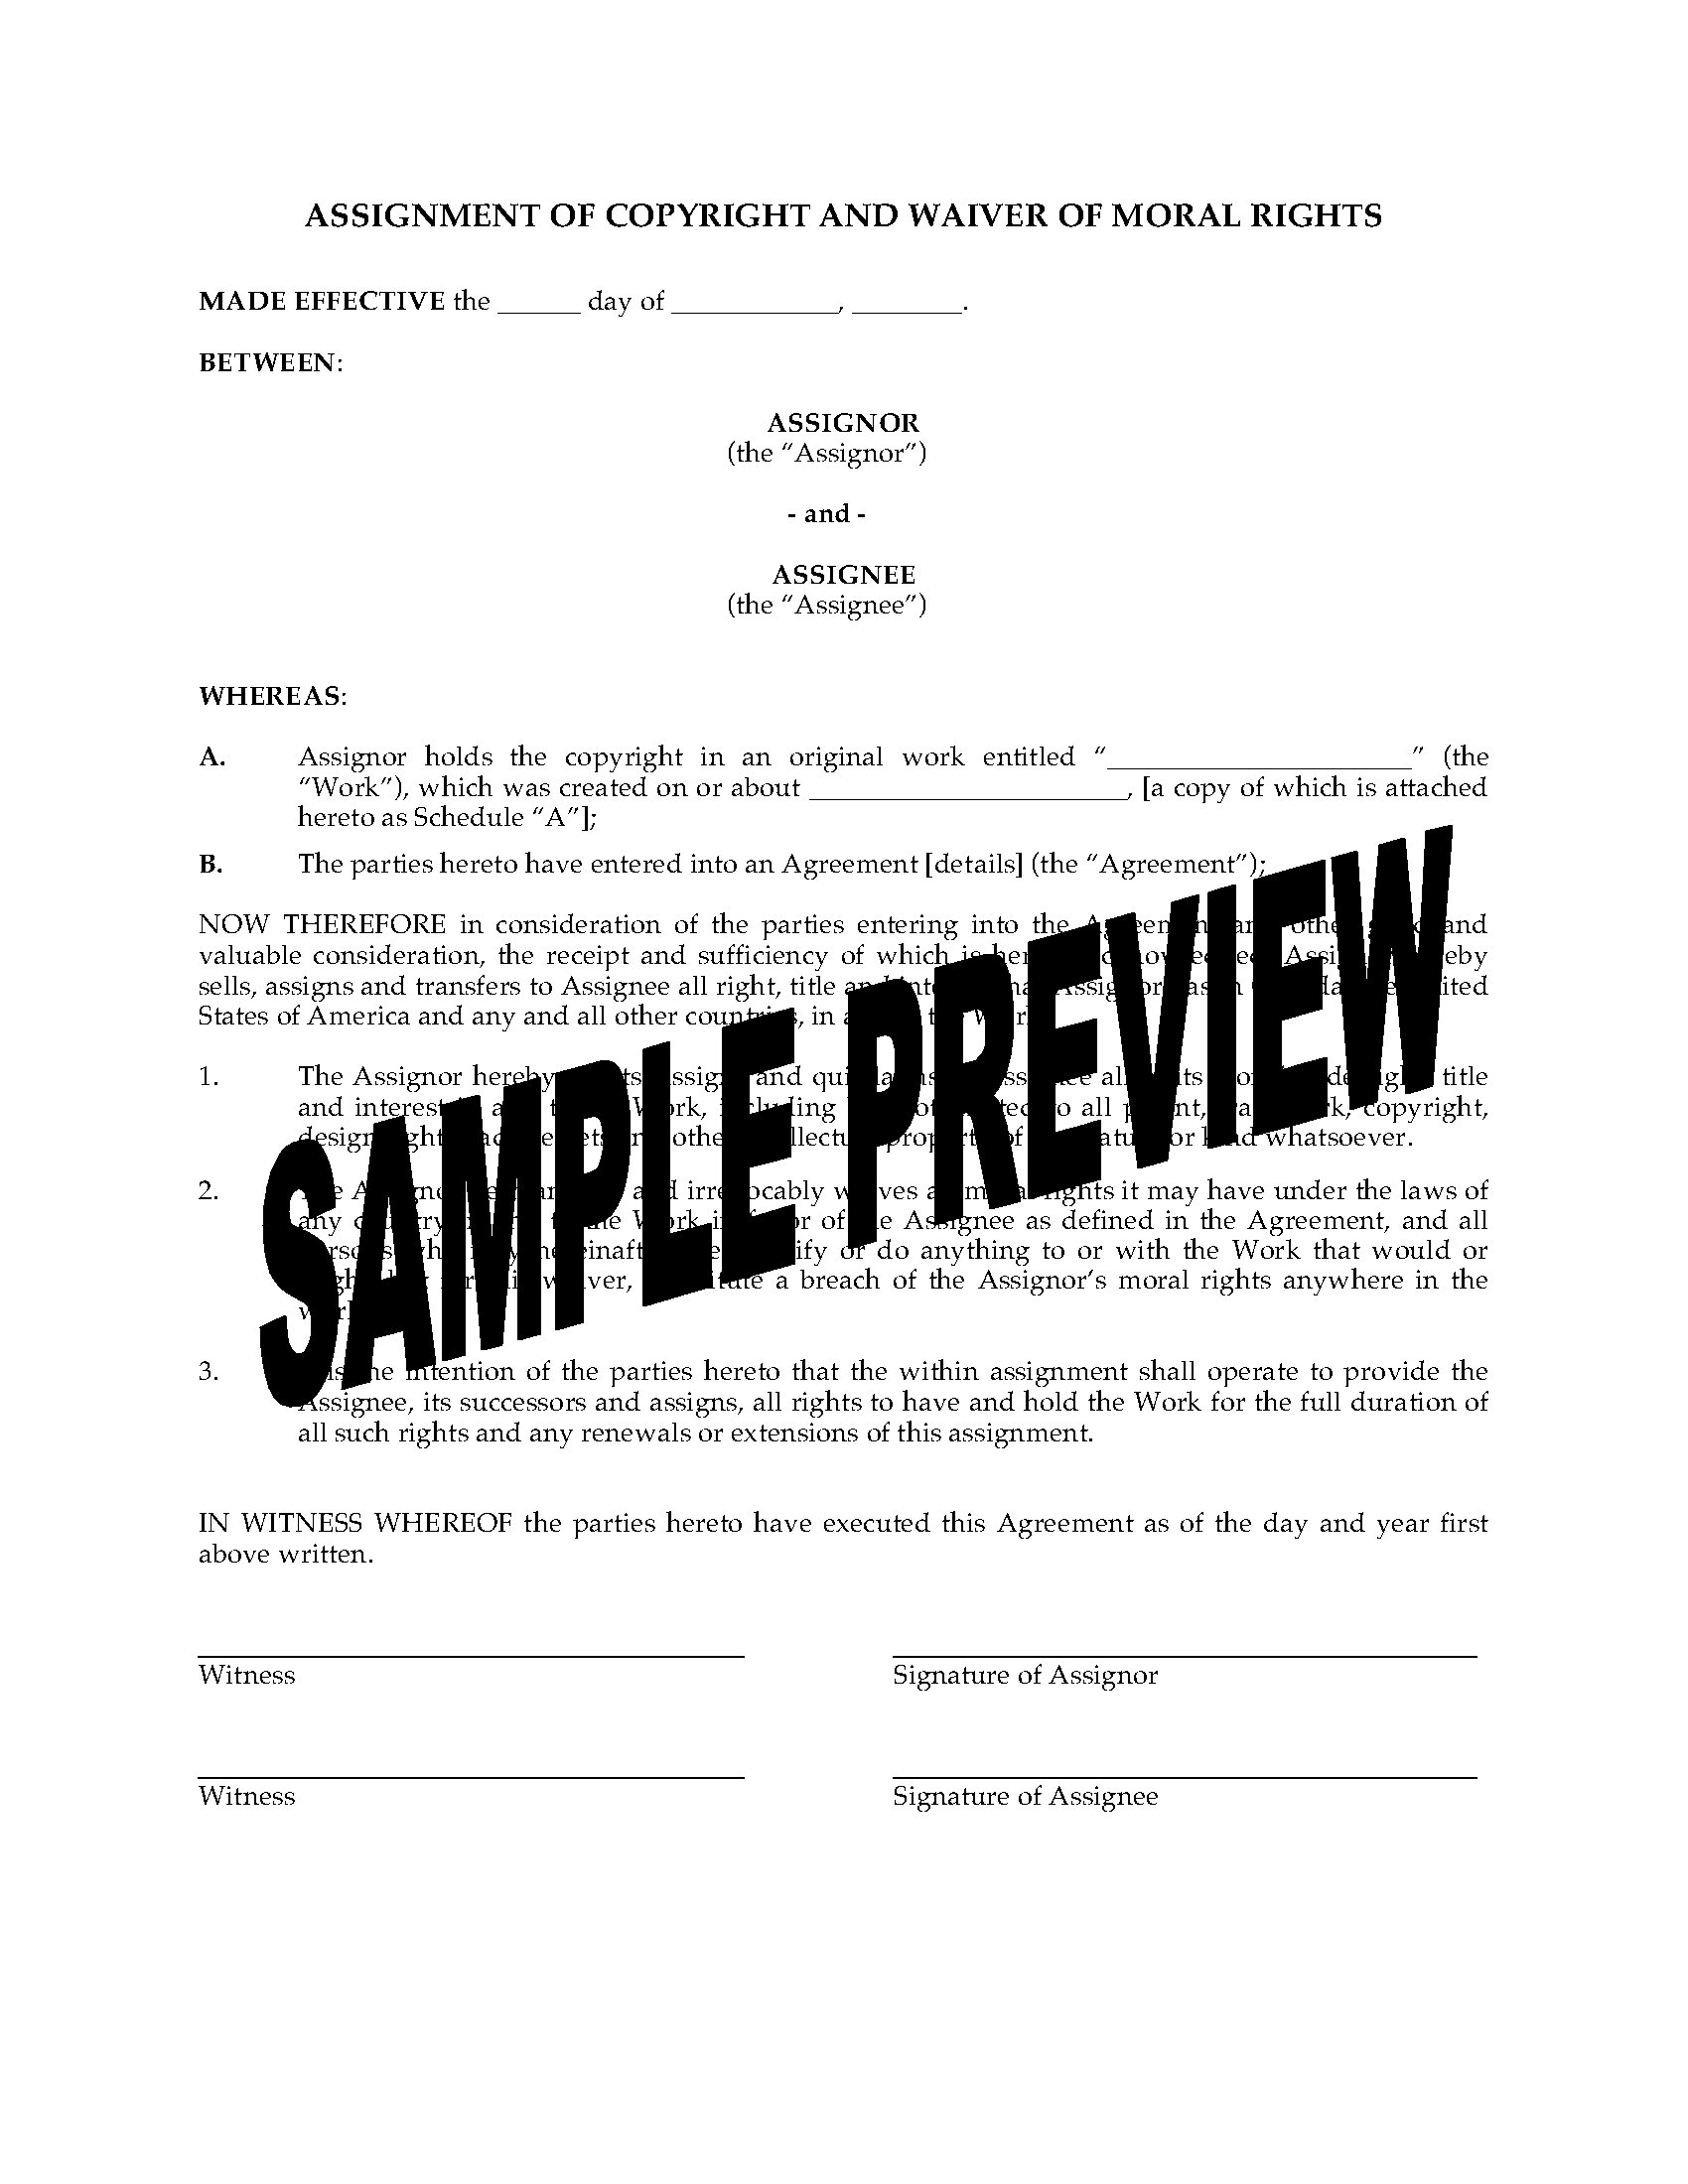 Canada Assignment Of Copyright And Waiver Of Moral Rights